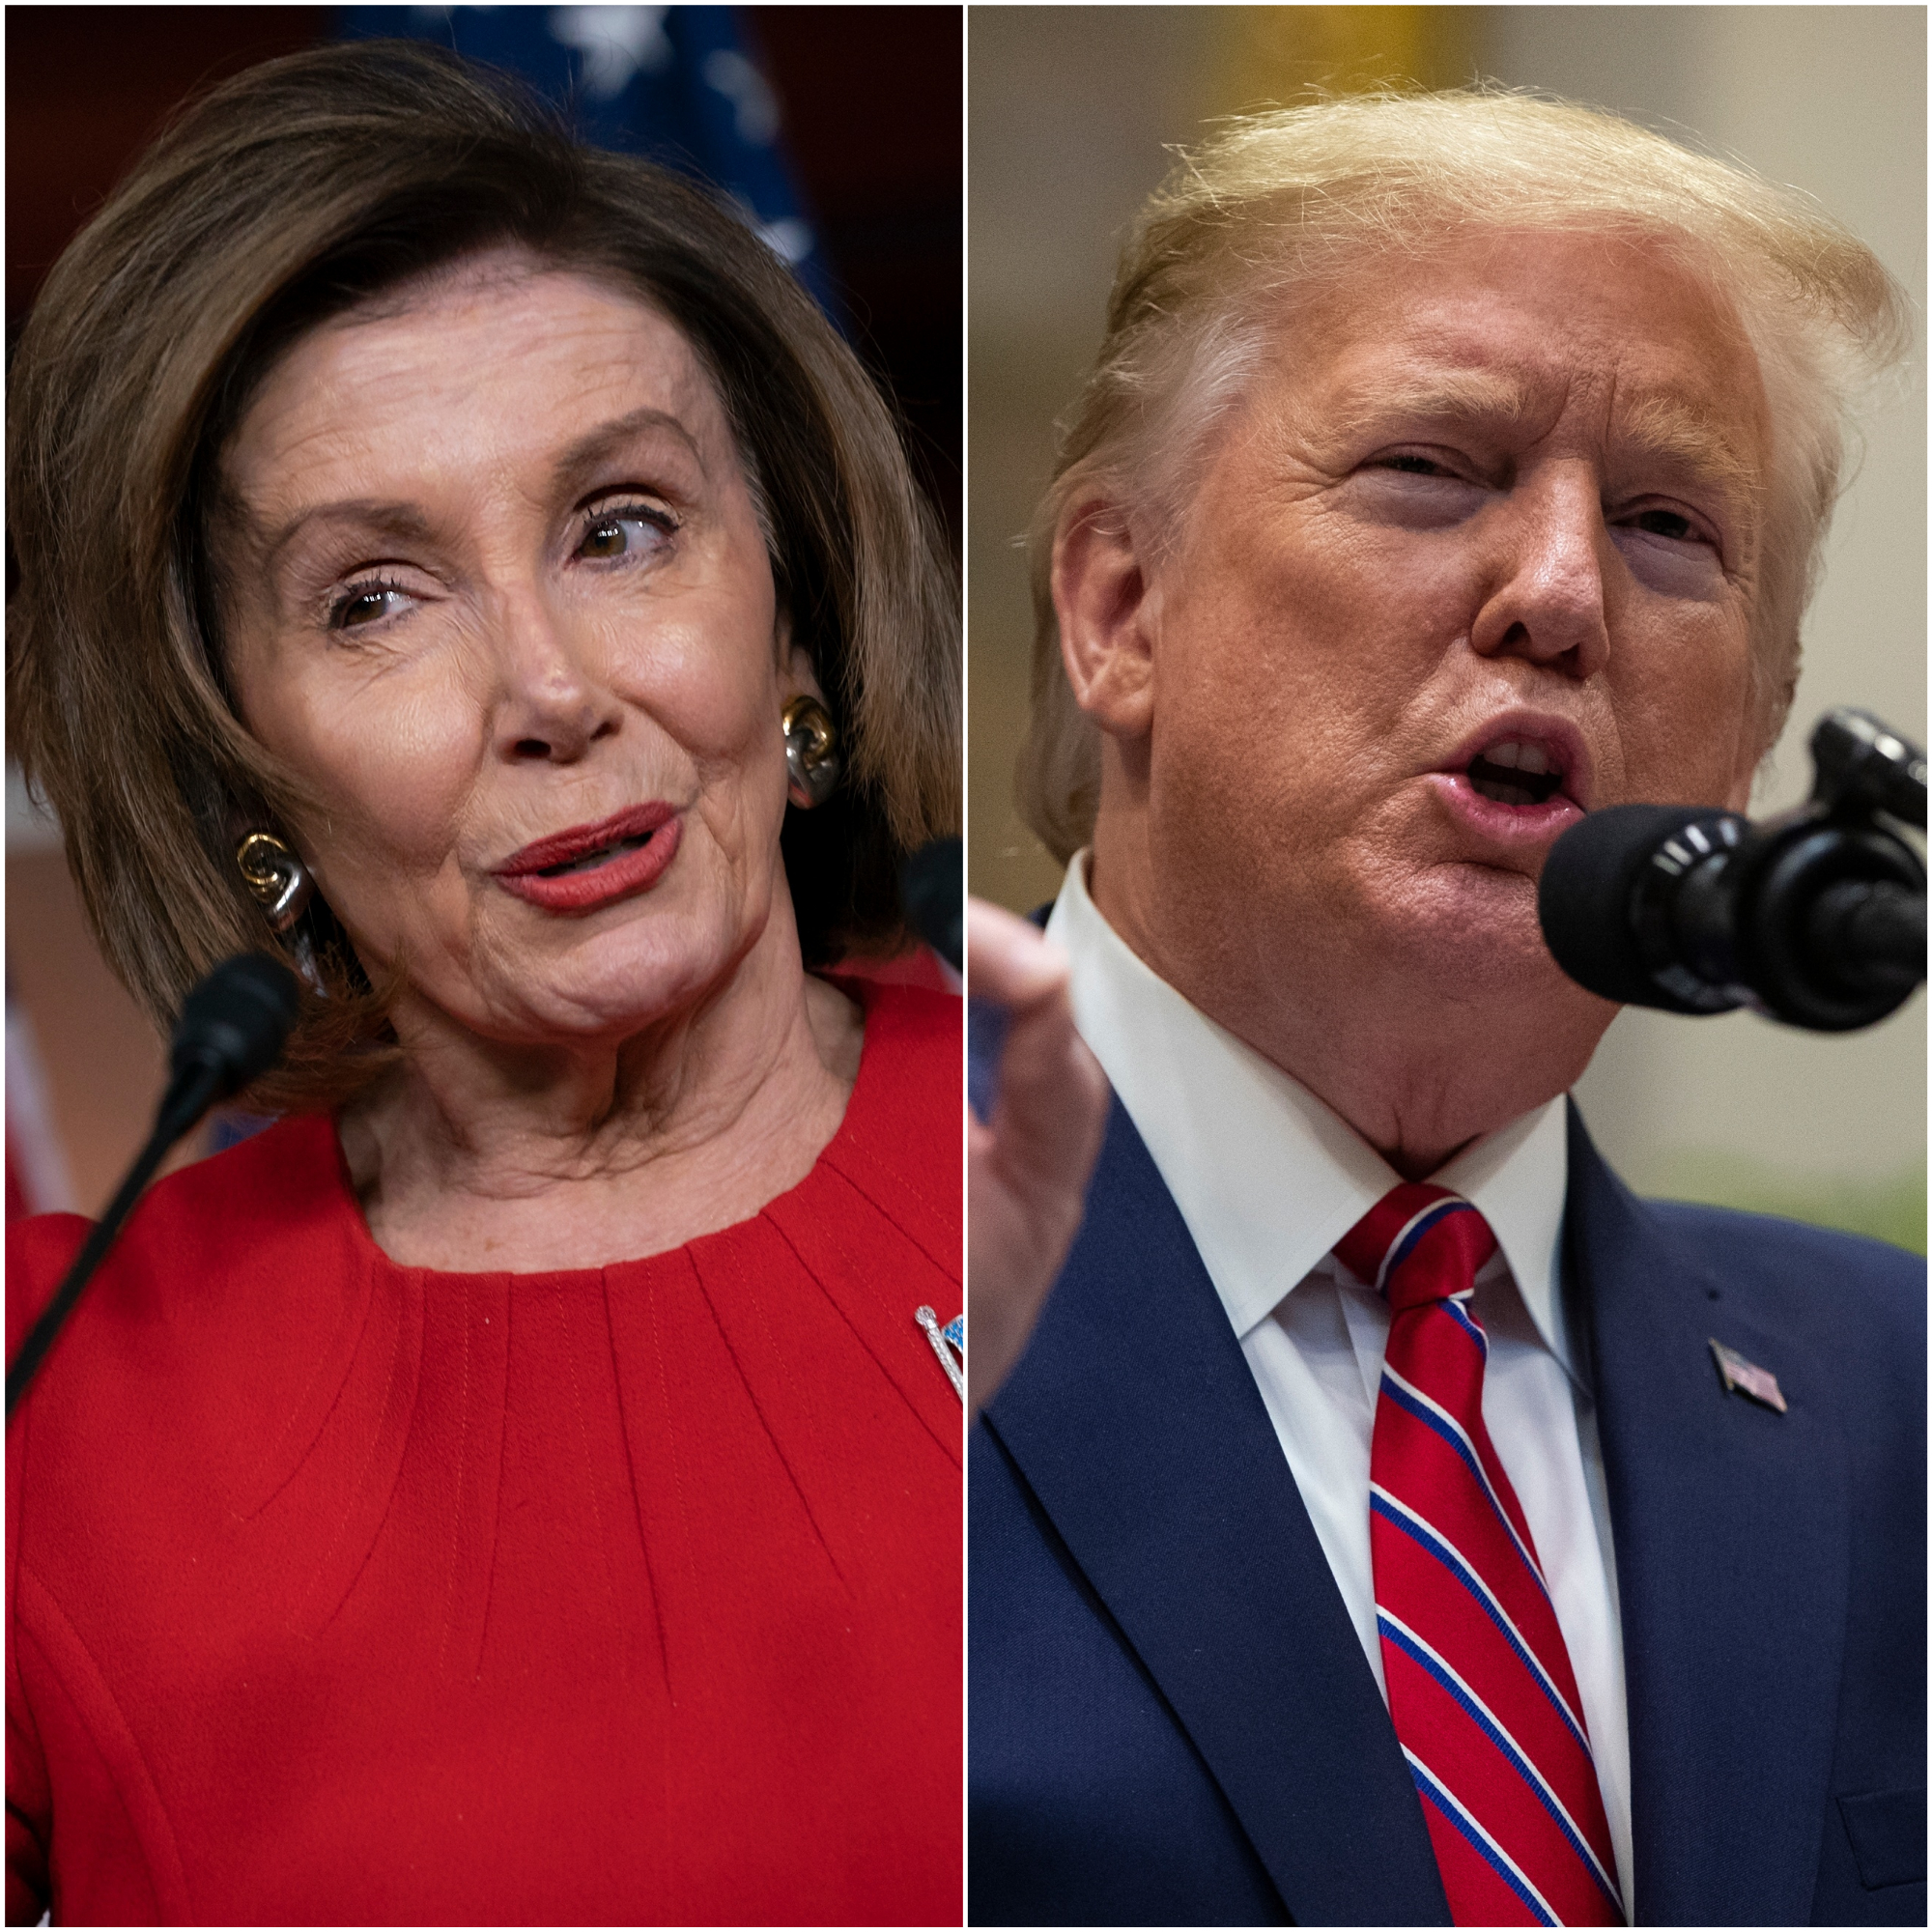 Nancy Pelosi and Donald Trump (J. Scott Applewhite/Evan Vucci/AP)